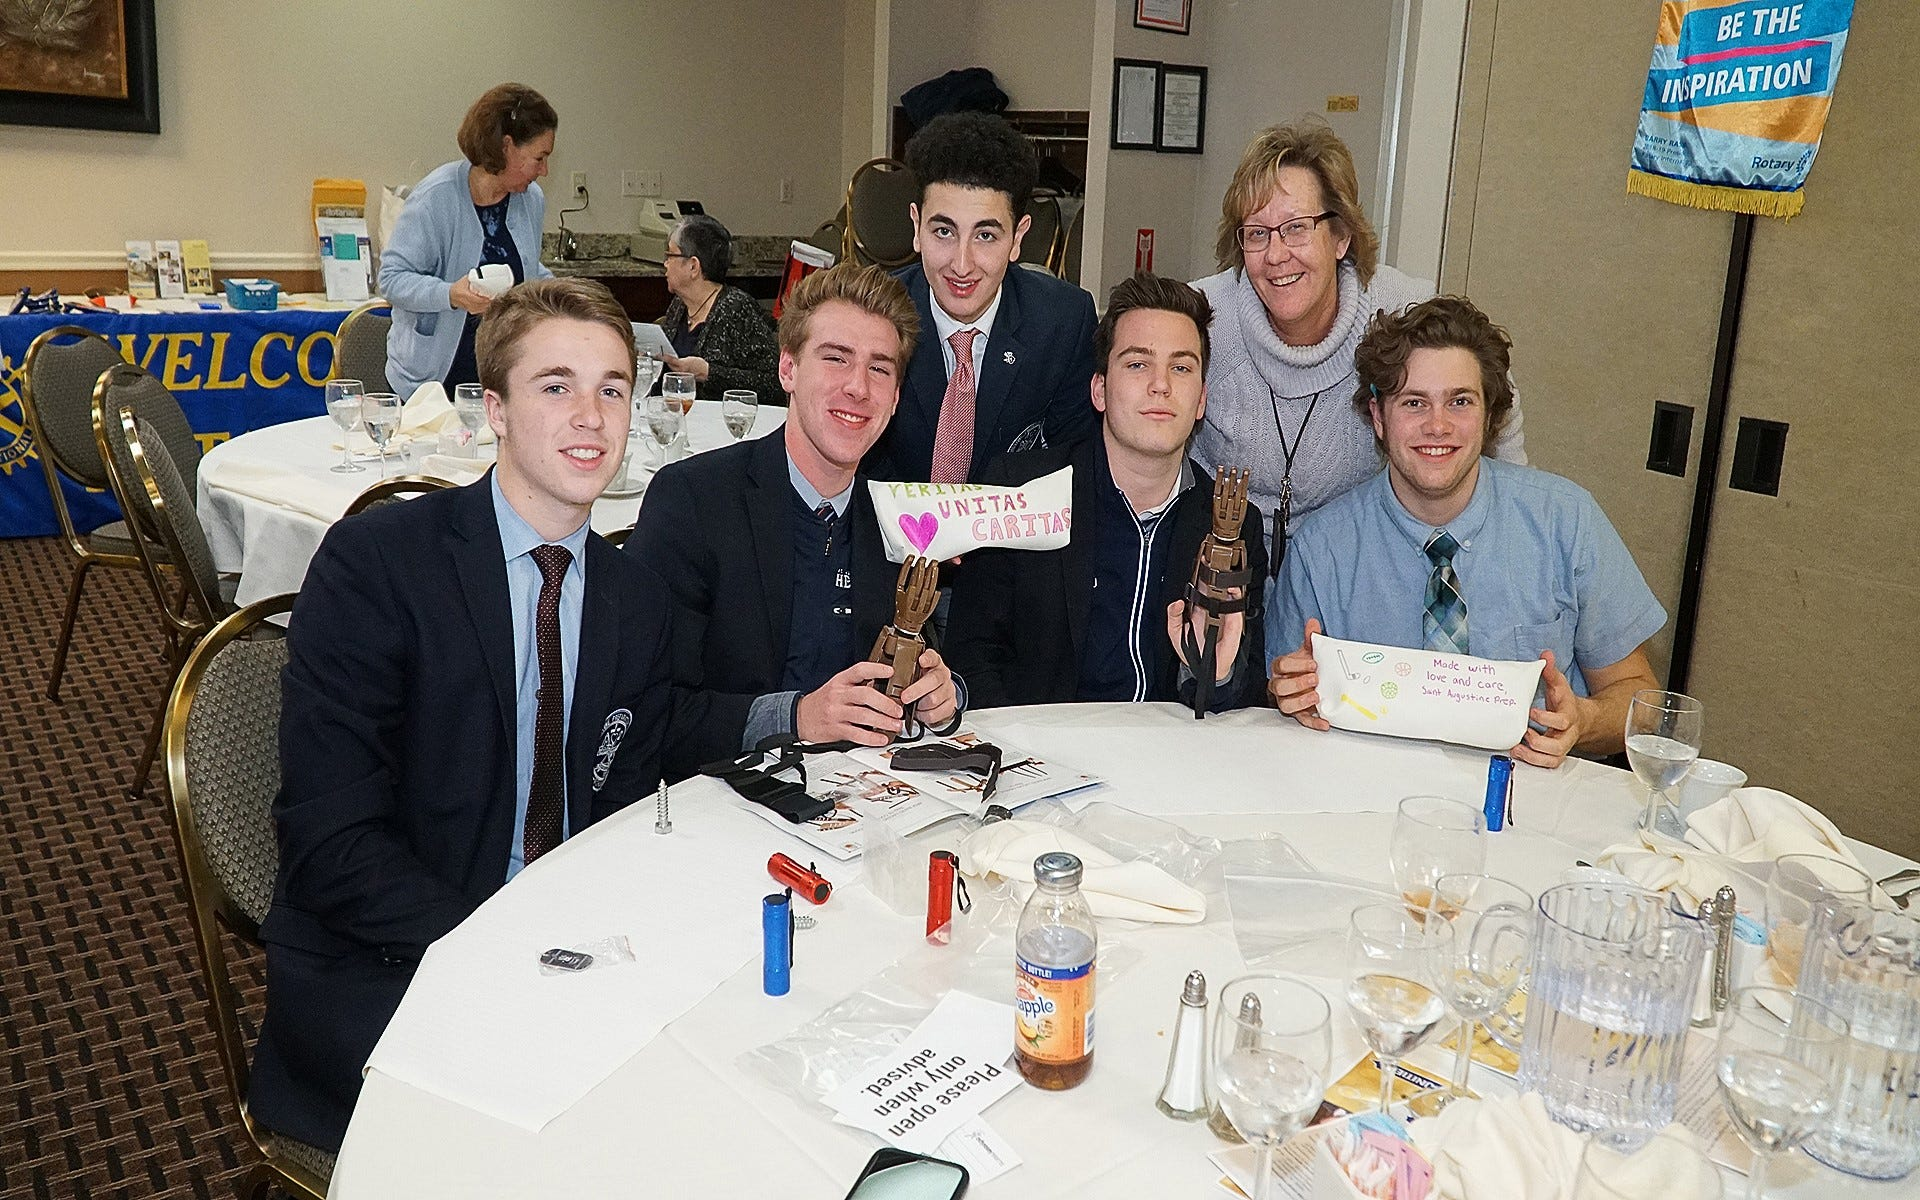 Members of St. Augustine College Preparatory School's Interact Club and their advisor, Nancy McHugh, assisted Rotary Club of Vineland with the assembly of prosthetic hands for distribution to people worldwide.